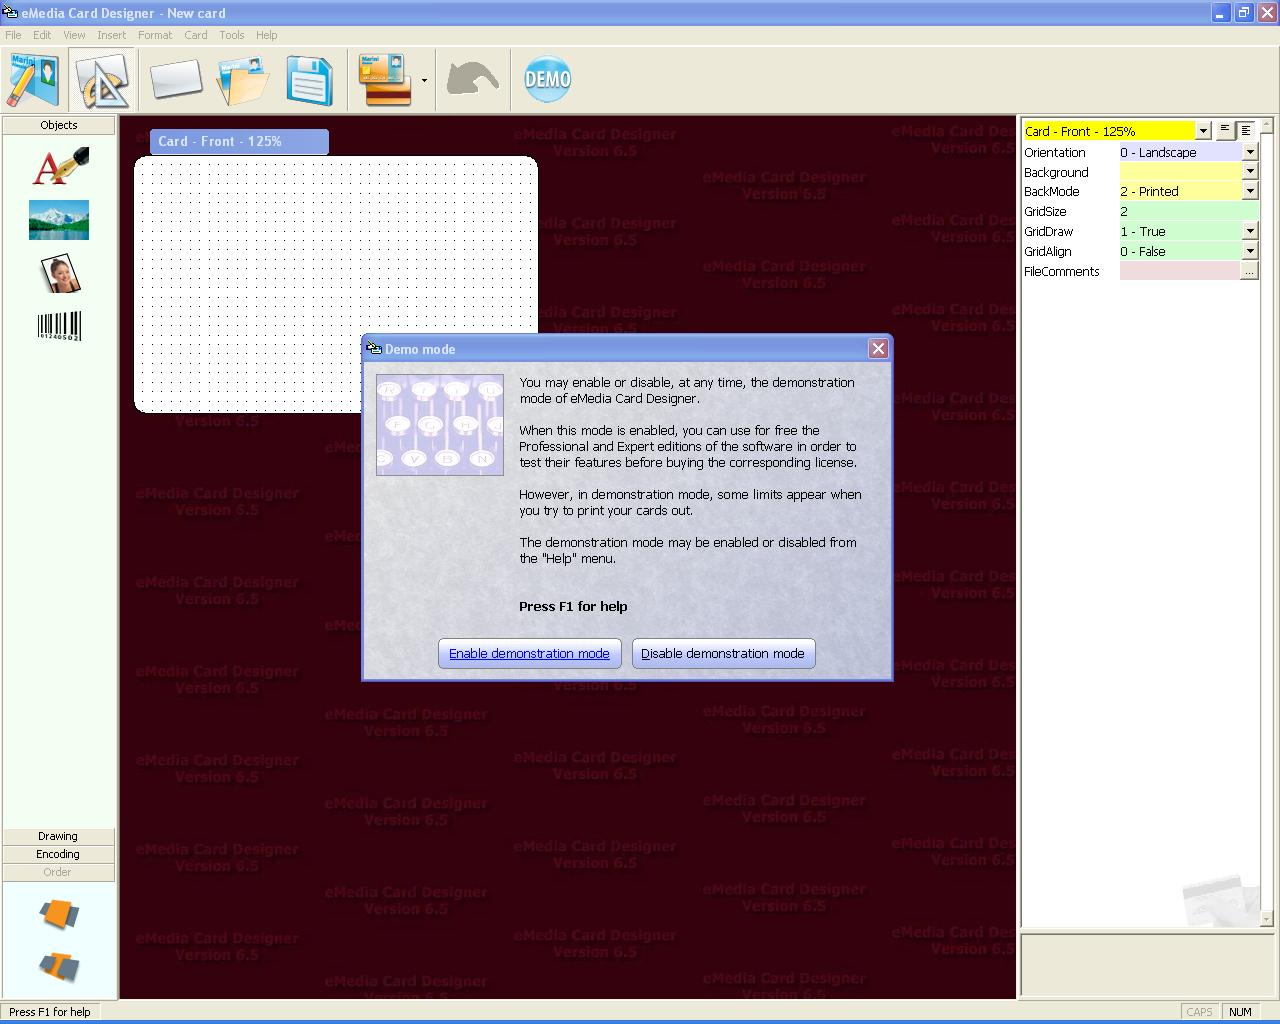 How To Exit Demo Mode In Evolis Emedia Software Transtech Systems Inctranstech Systems Inc